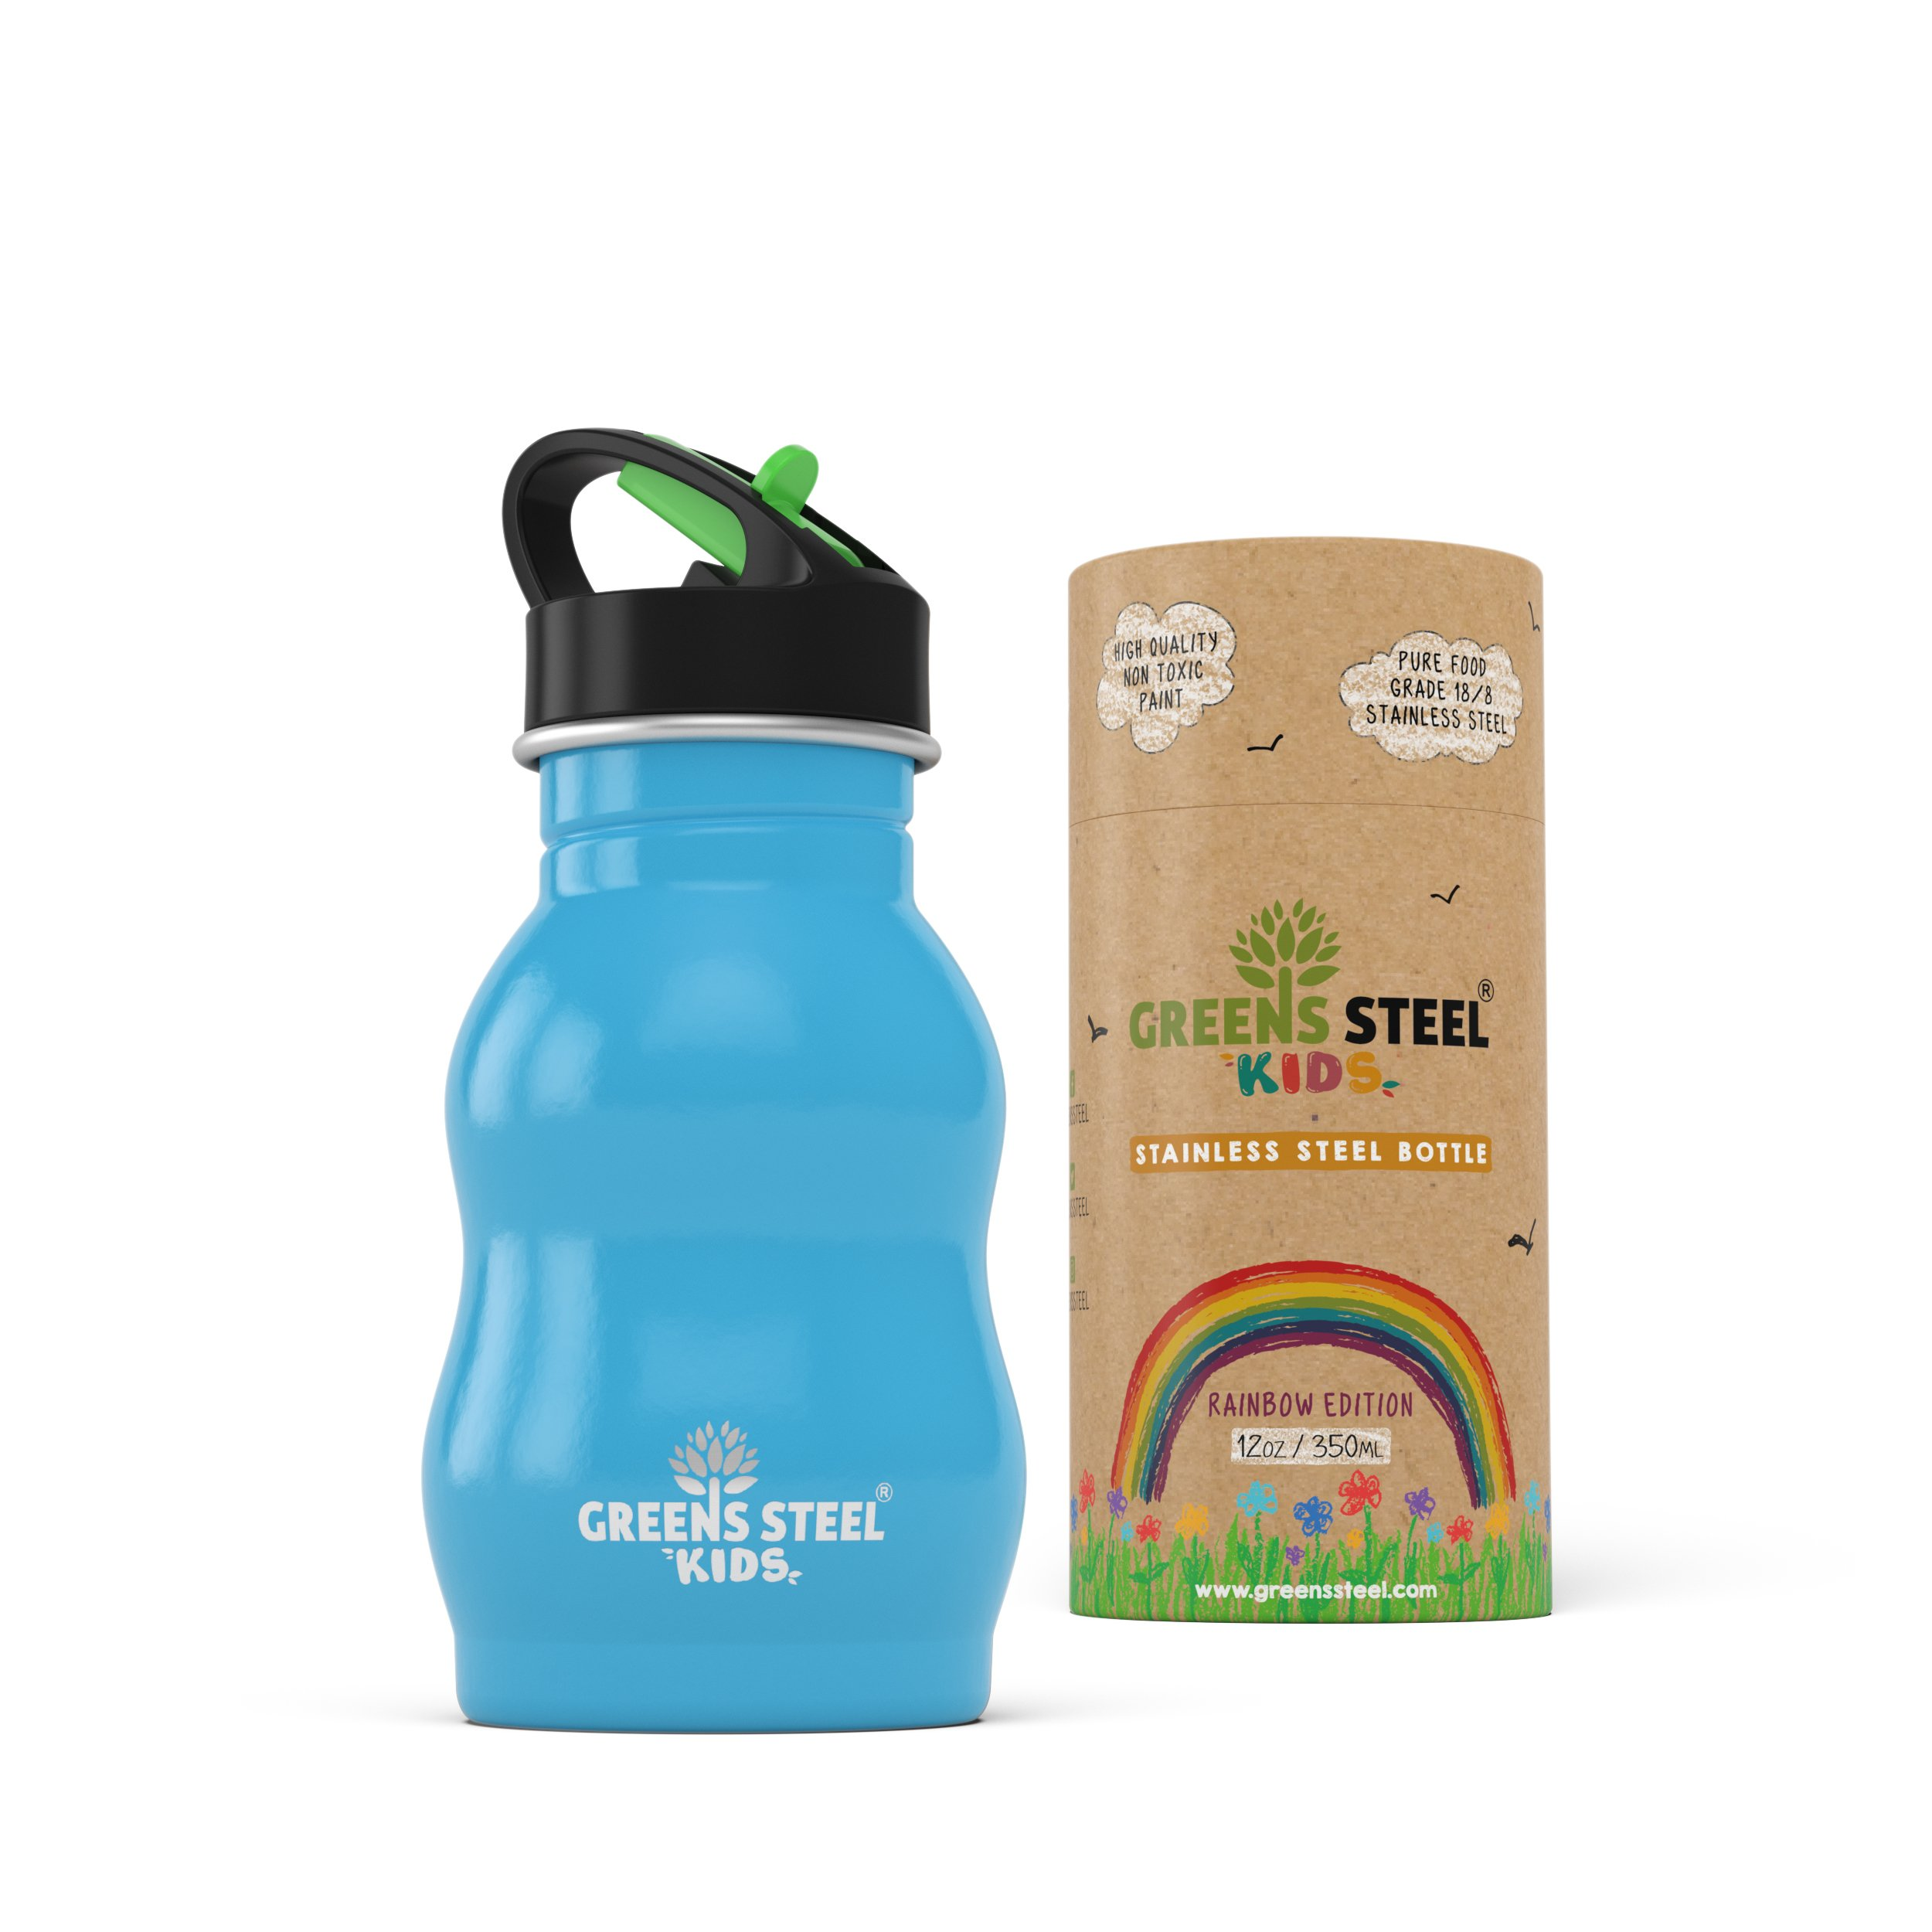 Kids Stainless Steel Water Bottle 12 oz - Sippy Cup Leak Proof Sports Cap with Straw - Metal Kids Bottle - Toddler Child Friendly Flask (Blue)